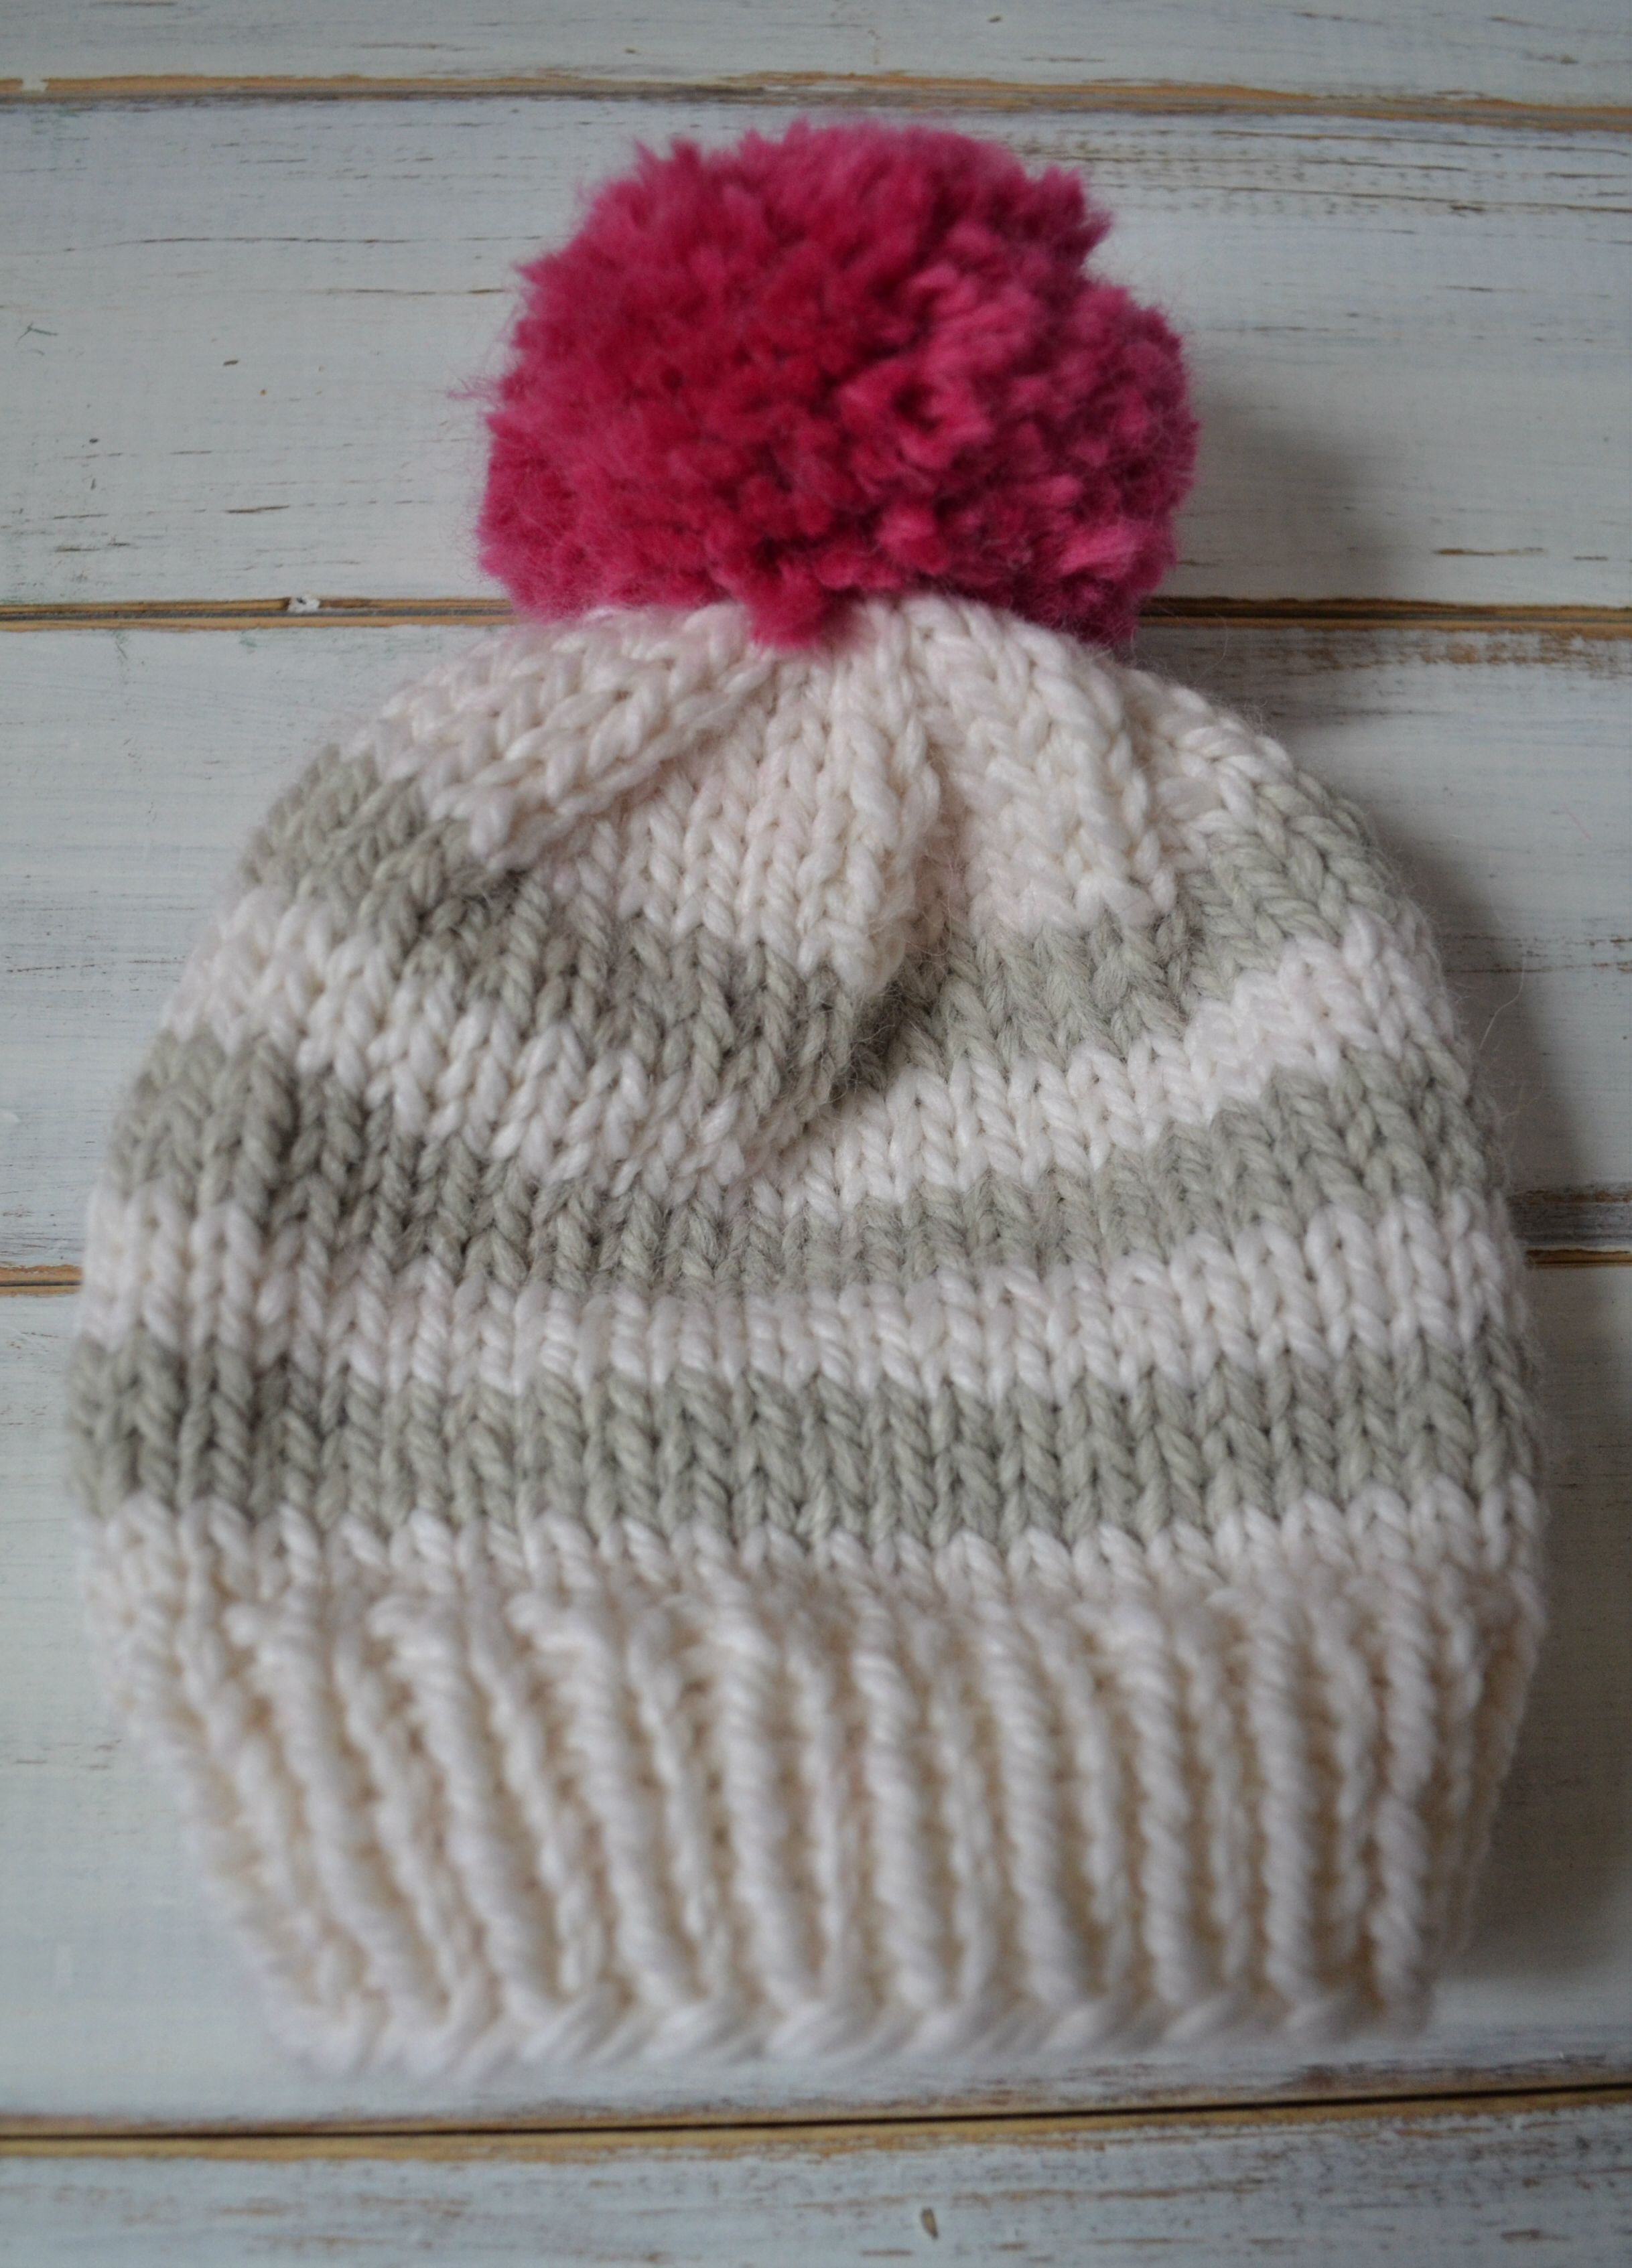 Simple Knitted Beanie Pattern : Easy baby knitted beanie pattern. knitting Pinterest